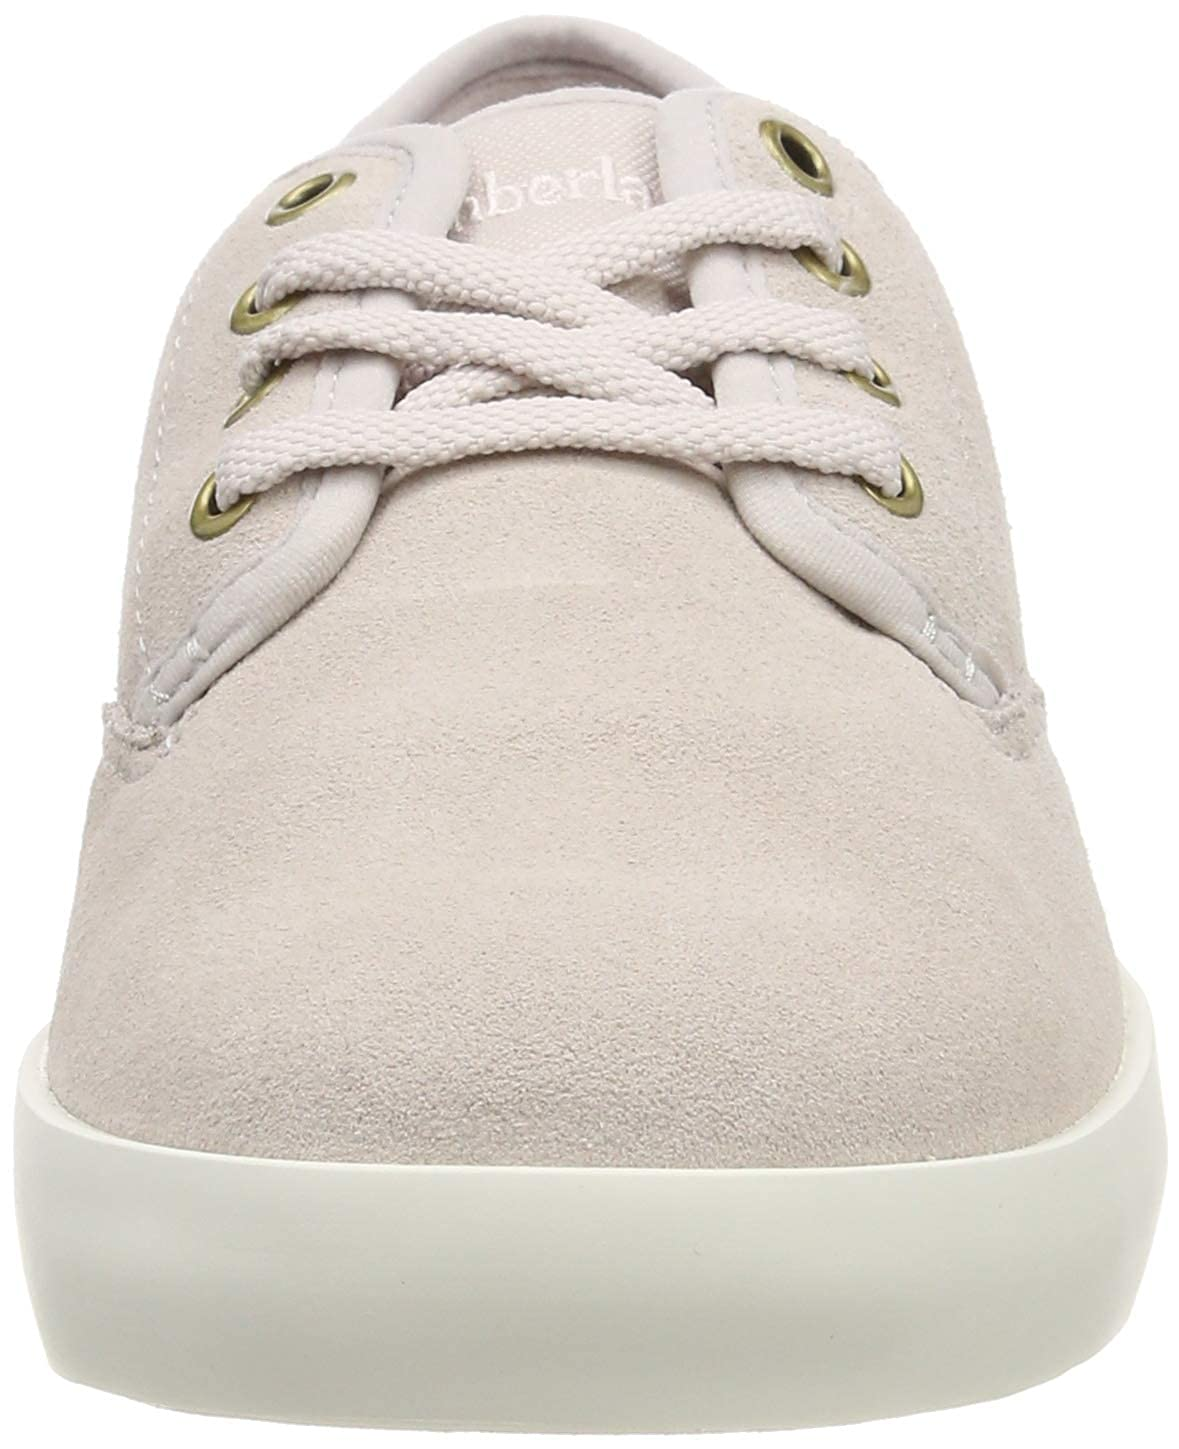 Sneakers Basses Femme Timberland Dausette Leather Oxford